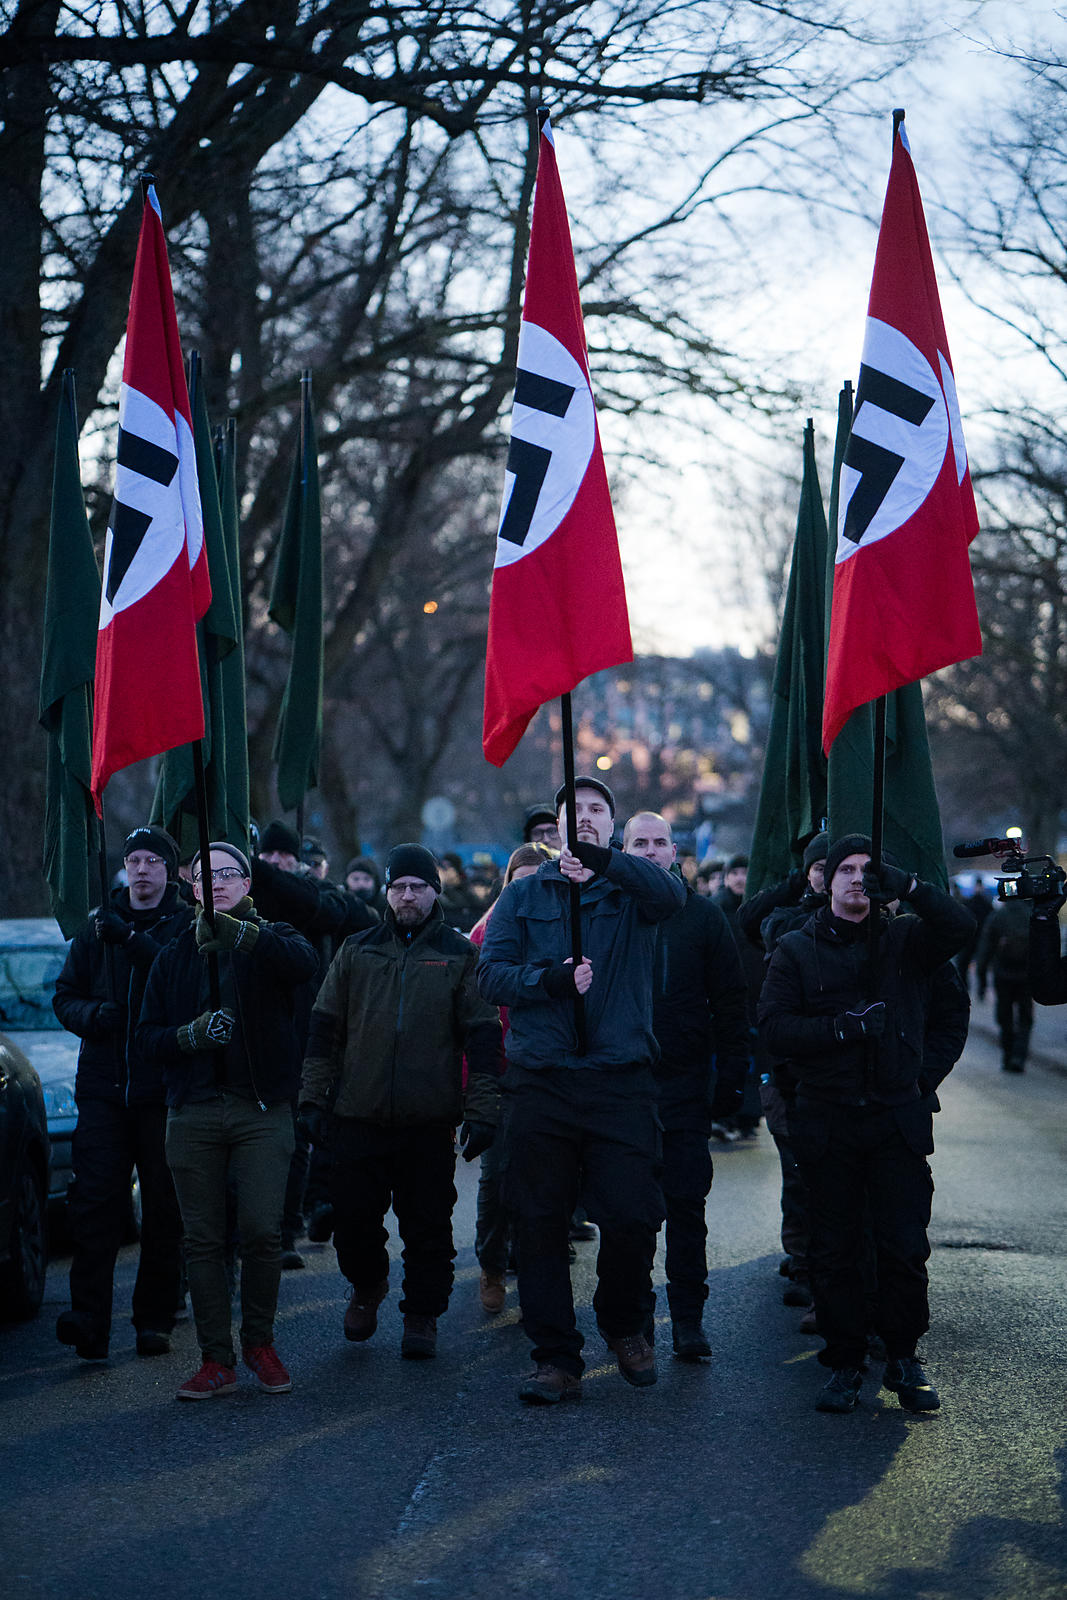 On 6/12/2018 a march 'Towards Freedom!' was held in Helsinki, Finland. Around 300 people took part in the march, led by membe...